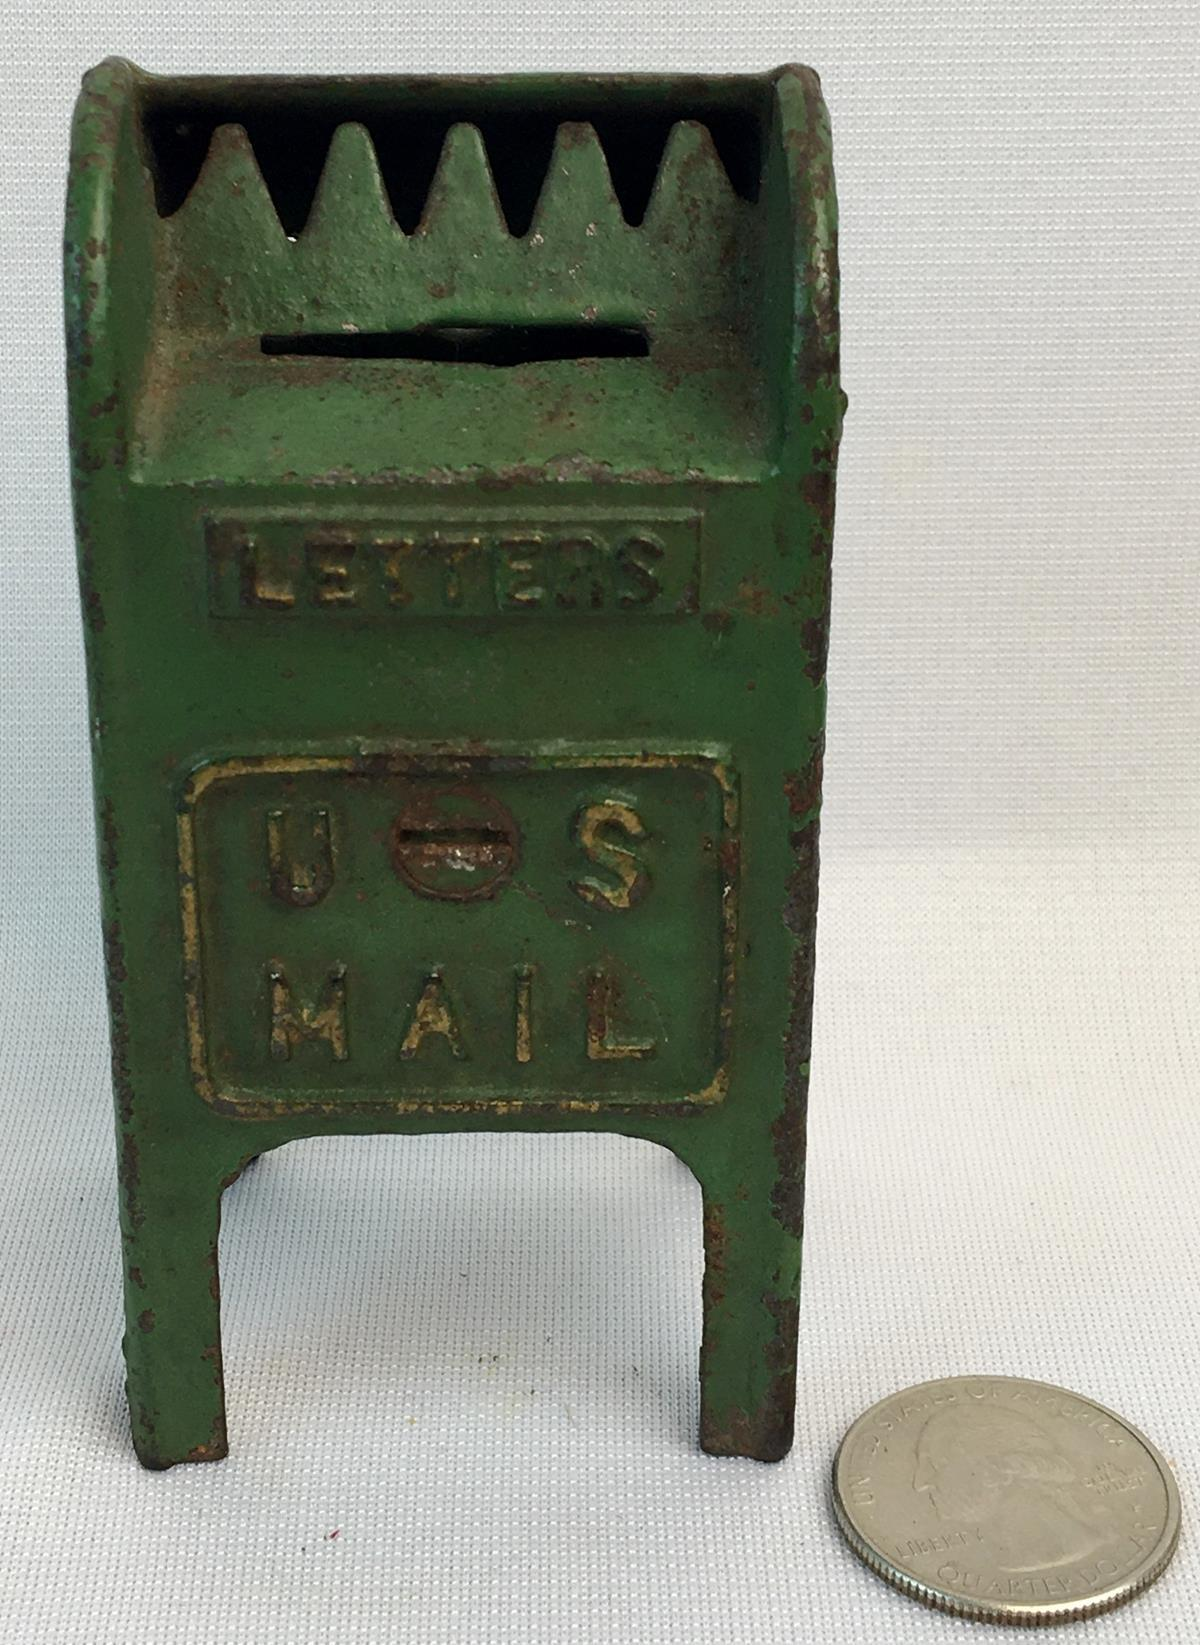 Antique c. 1920 Cast Iron Green Painted US Letters Mail Box Coin Still Bank